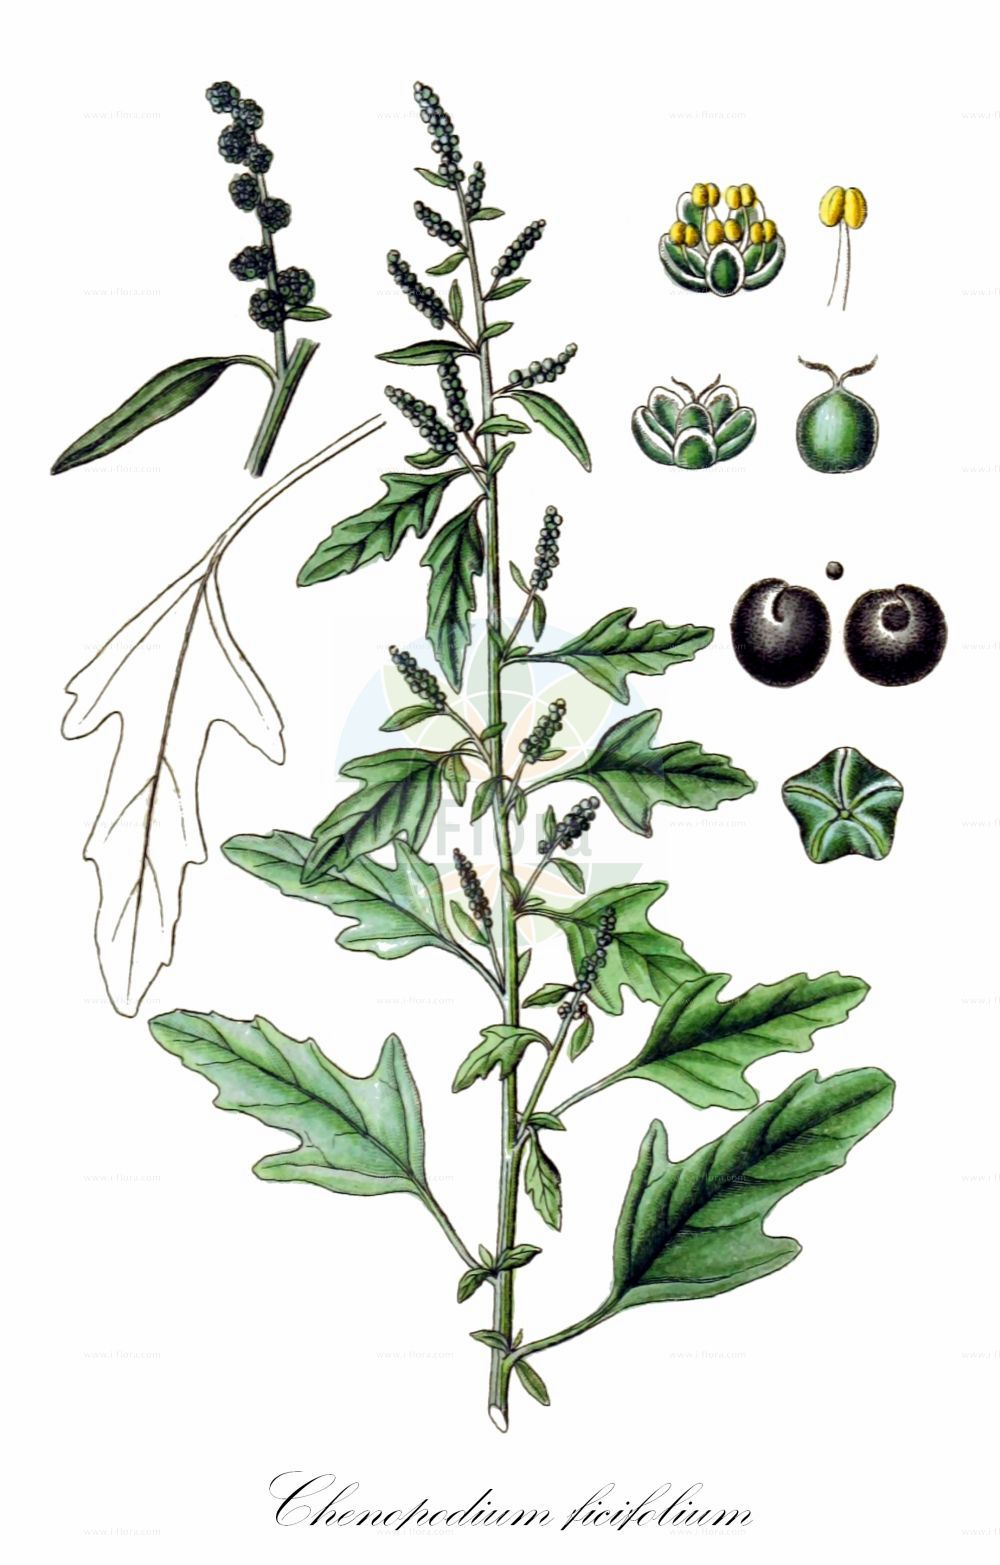 Historische Abbildung von Chenopodium ficifolium (Feigenblaettriger Gaensefuss - Fig-leaved Goosefoot). Das Bild zeigt Blatt, Bluete, Frucht und Same. ---- Historical Drawing of Chenopodium ficifolium (Feigenblaettriger Gaensefuss - Fig-leaved Goosefoot).The image is showing leaf, flower, fruit and seed.(Chenopodium ficifolium,Feigenblaettriger Gaensefuss,Fig-leaved Goosefoot,Figleaf Goosefoot,Chenopodium,Gaensefuss,Goosefoot,Amaranthaceae,Fuchsschwanzgewaechse,Pigweed family,Blatt,Bluete,Frucht,Same,leaf,flower,fruit,seed,Sturm (1796f))